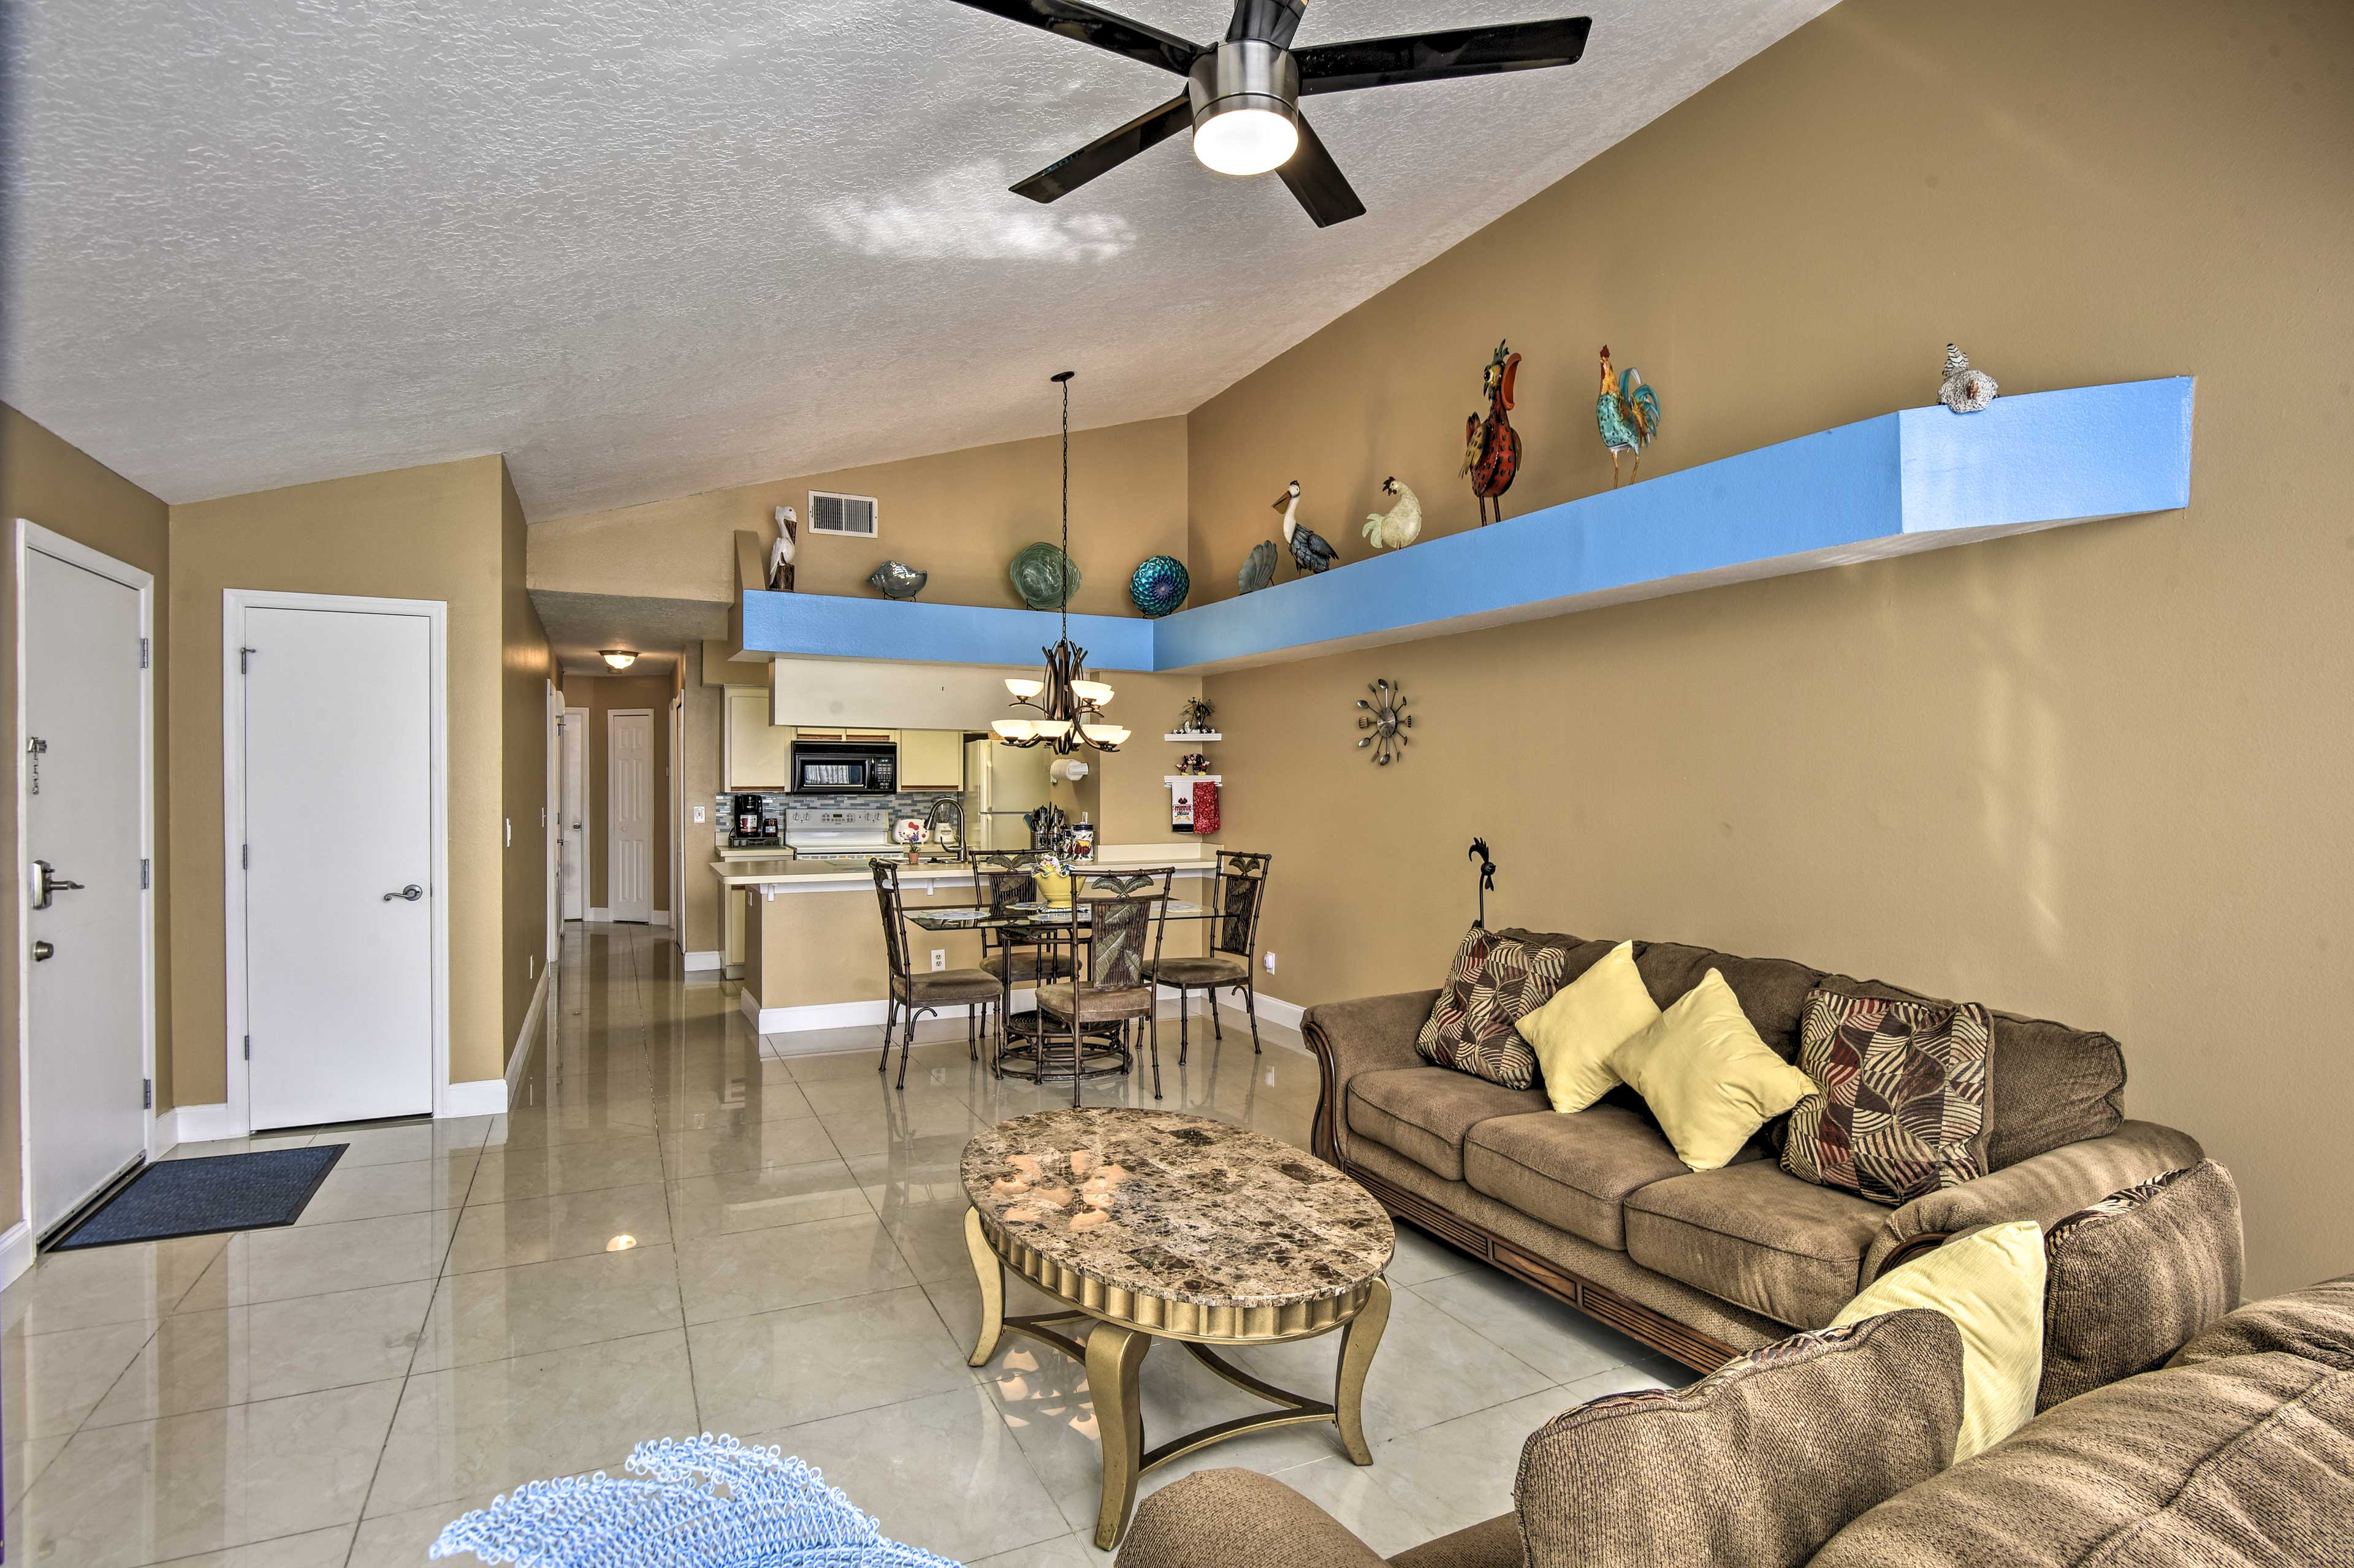 The open concept layout is spacious and inviting.